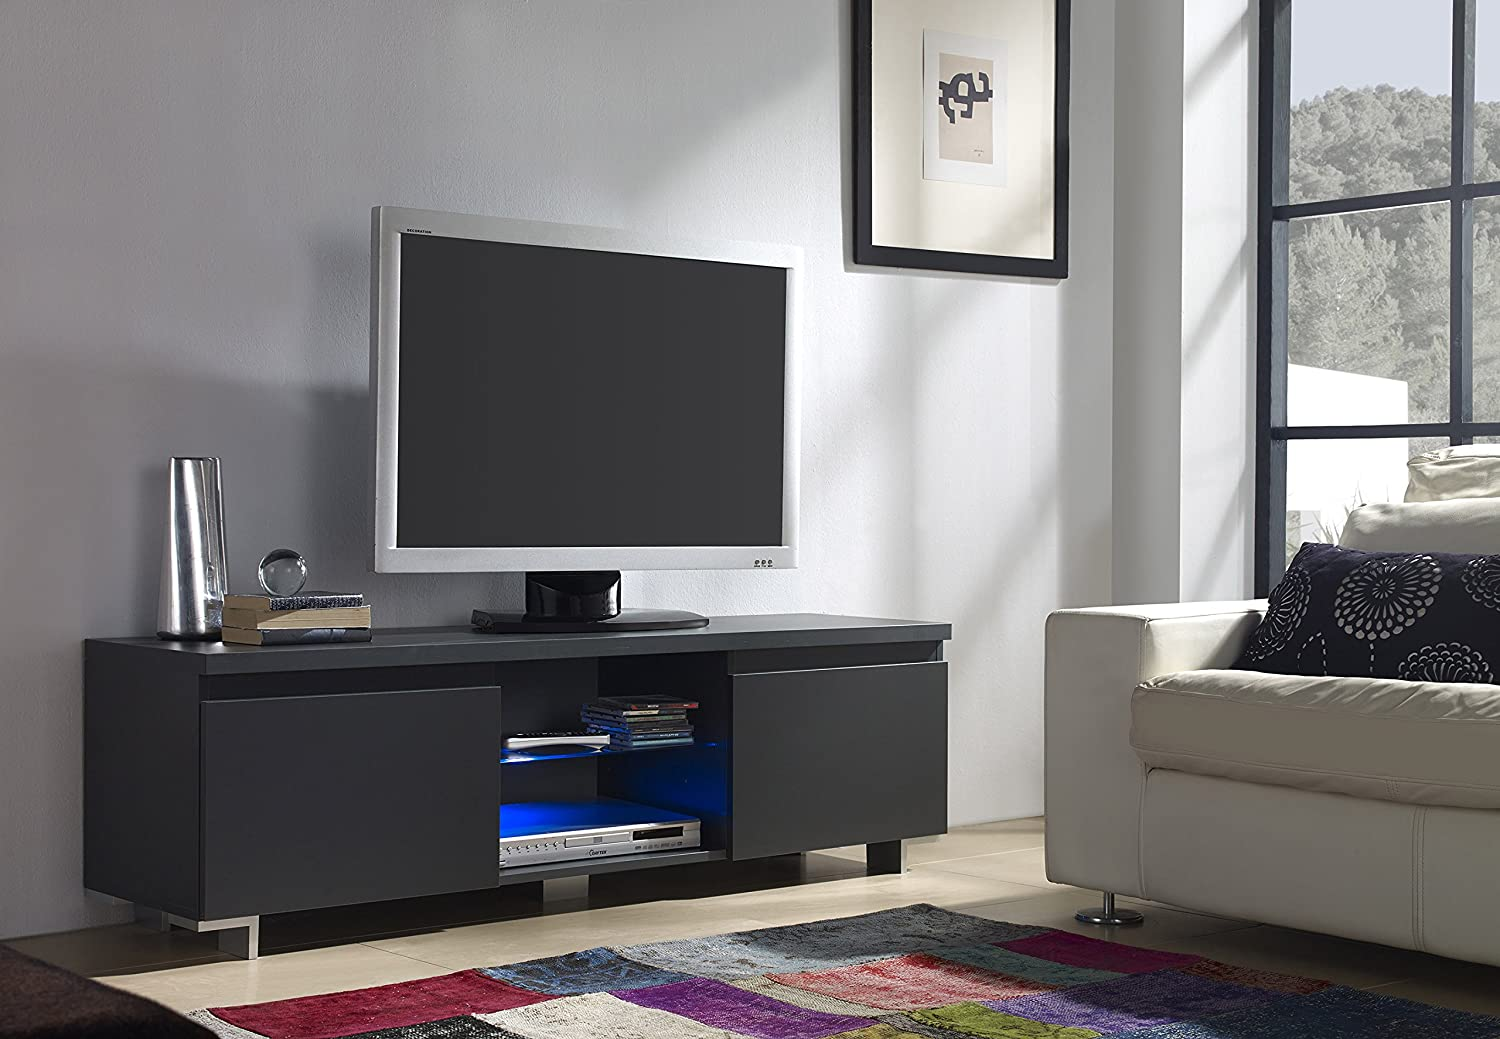 Meuble TV 2 porte en gris anthracite avec LED: Amazon.fr: Cuisine ...